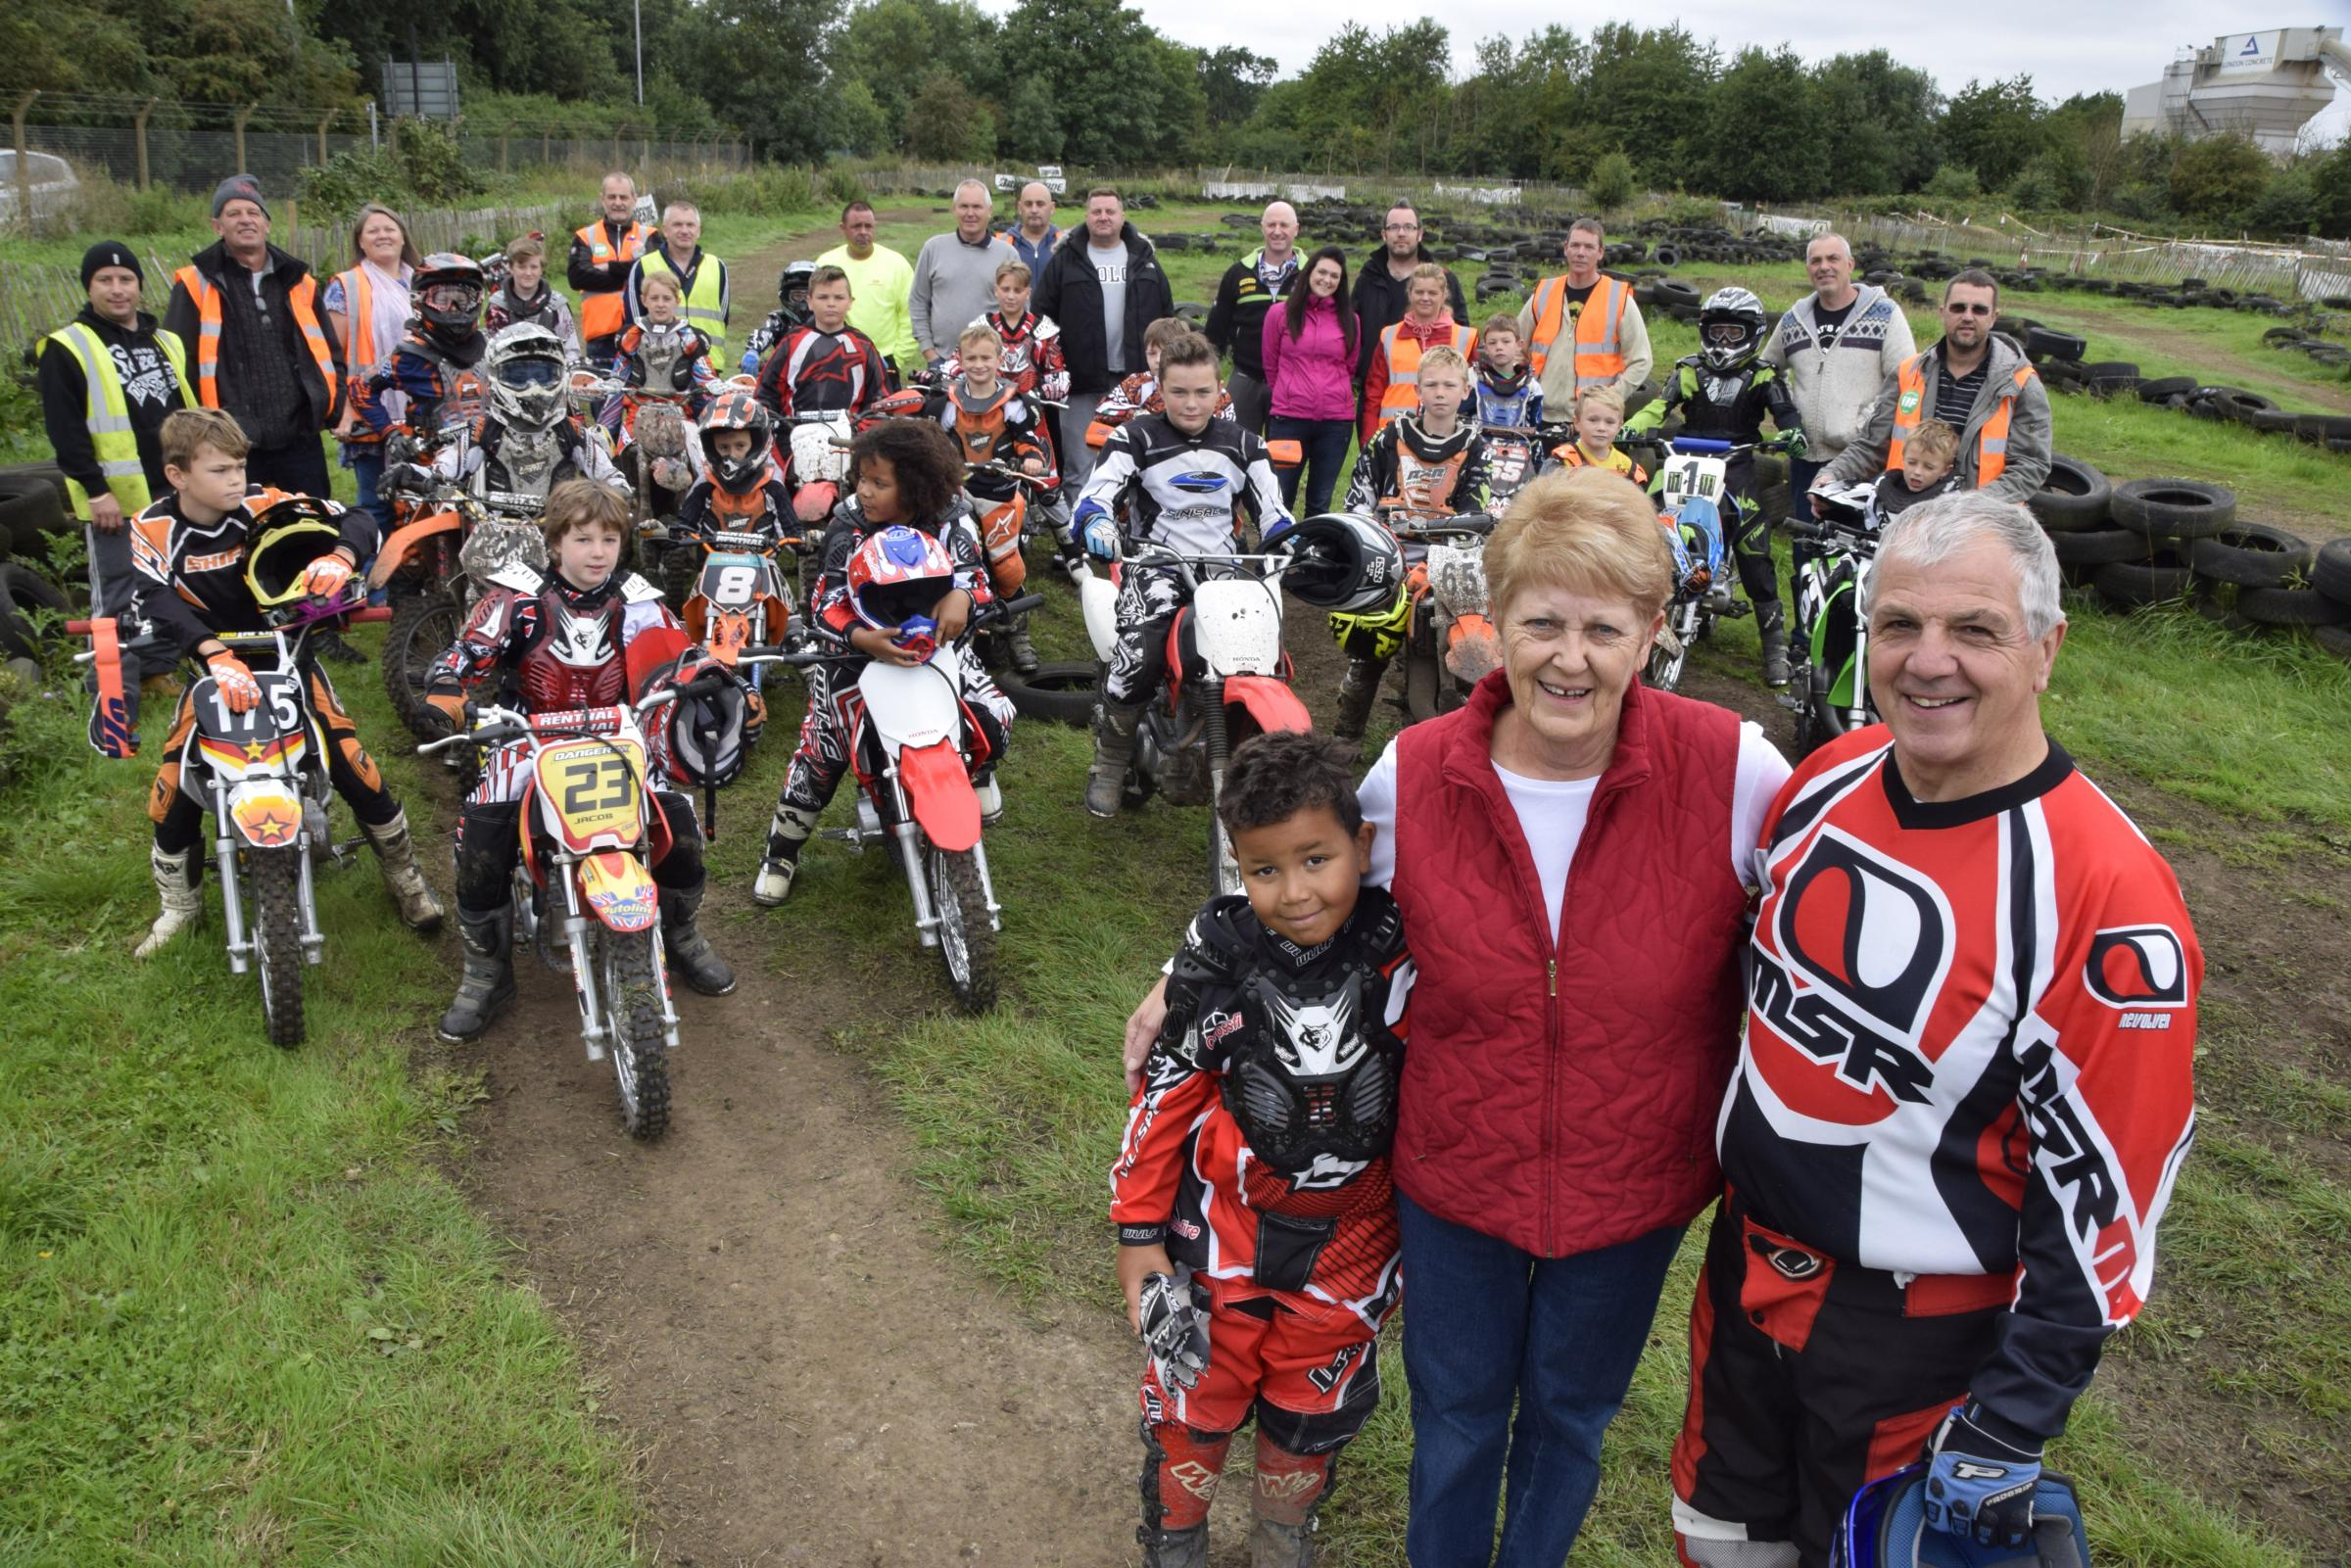 Anne and Vic Allan who ran the club with their grandson Tyla Hendry and other riders